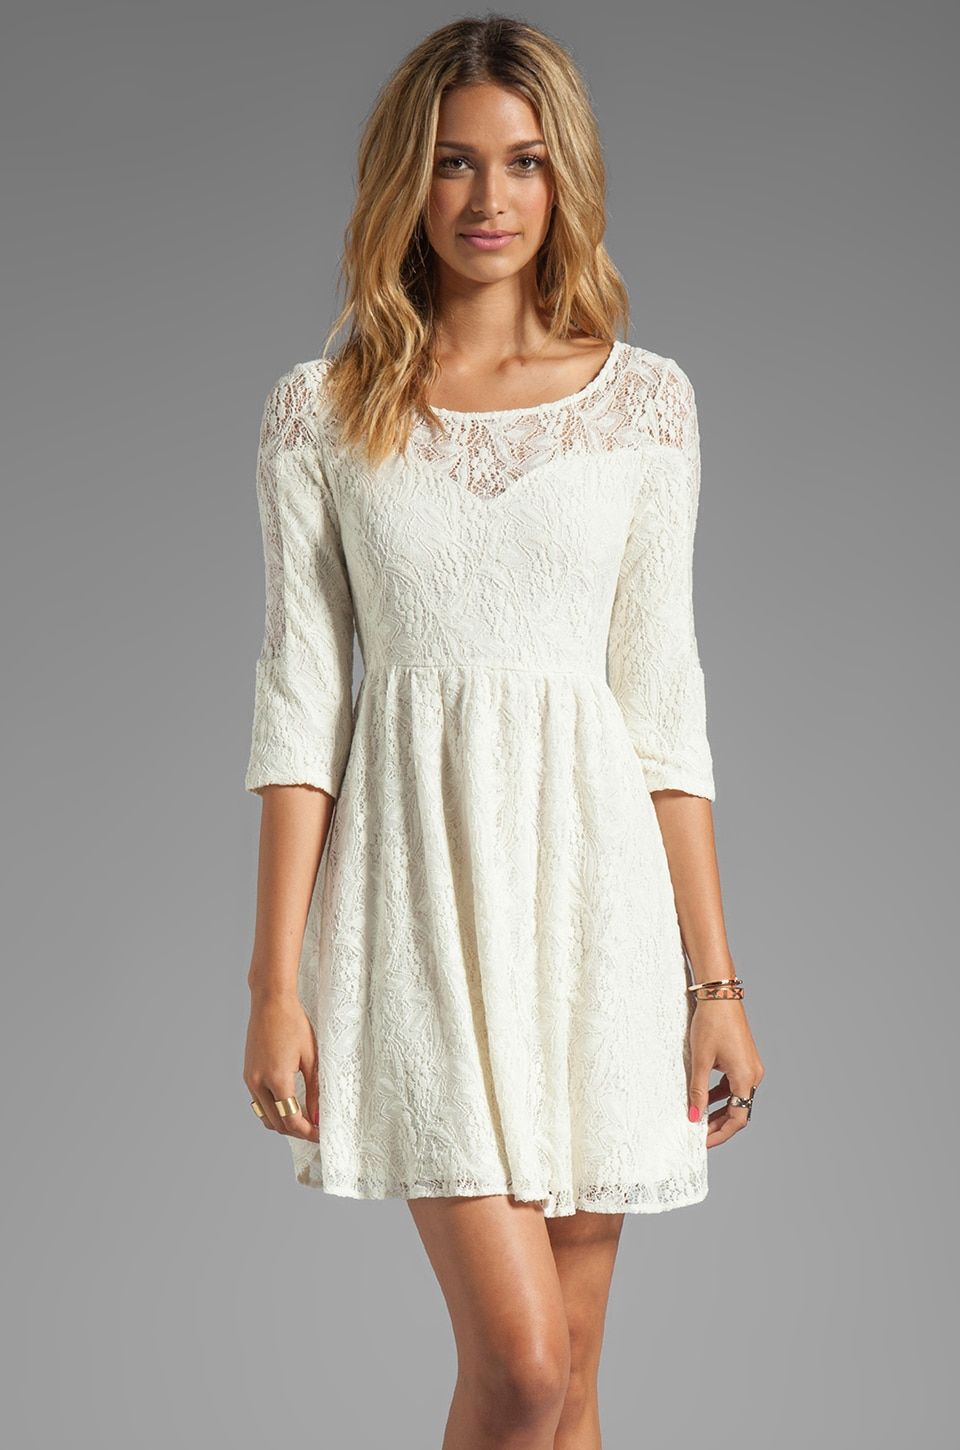 Free People Shake It Up Dress in Cream